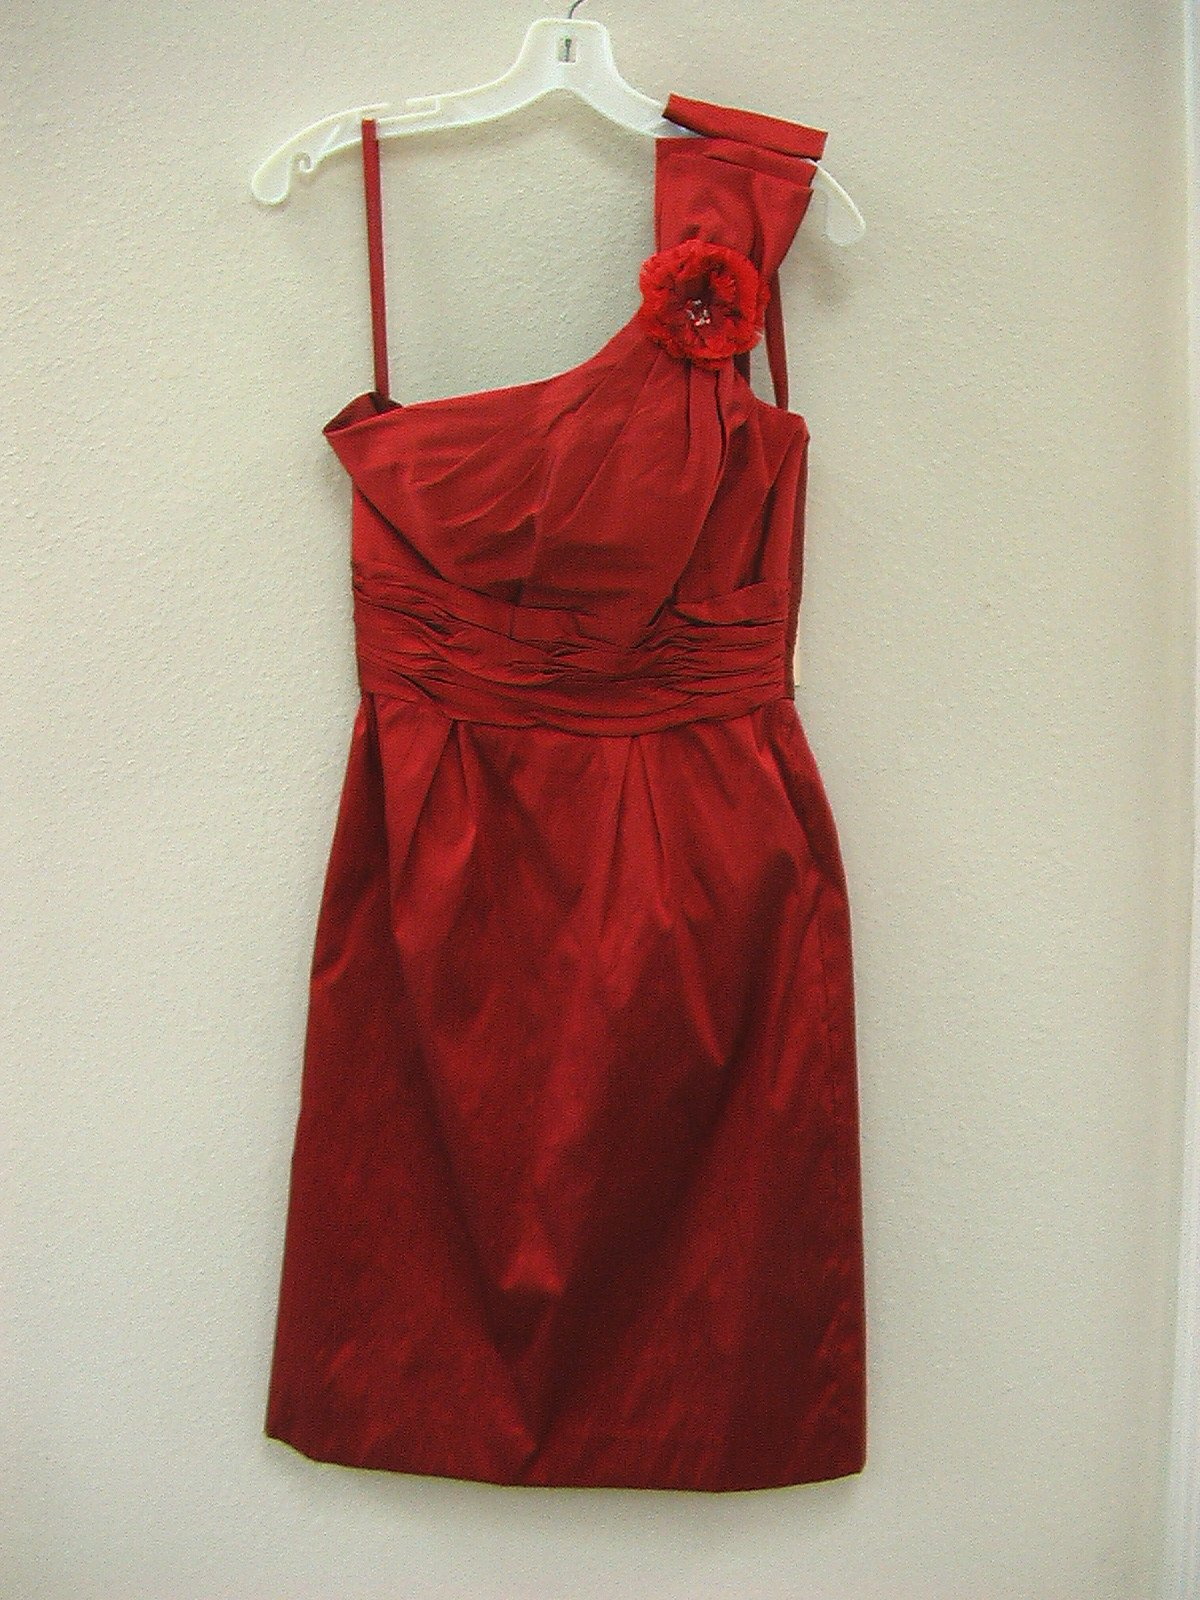 Mori Lee Angelina Faccenda 20268 Ruby size 8 In Stock Bridesmaid Dress - Tom's Bridal